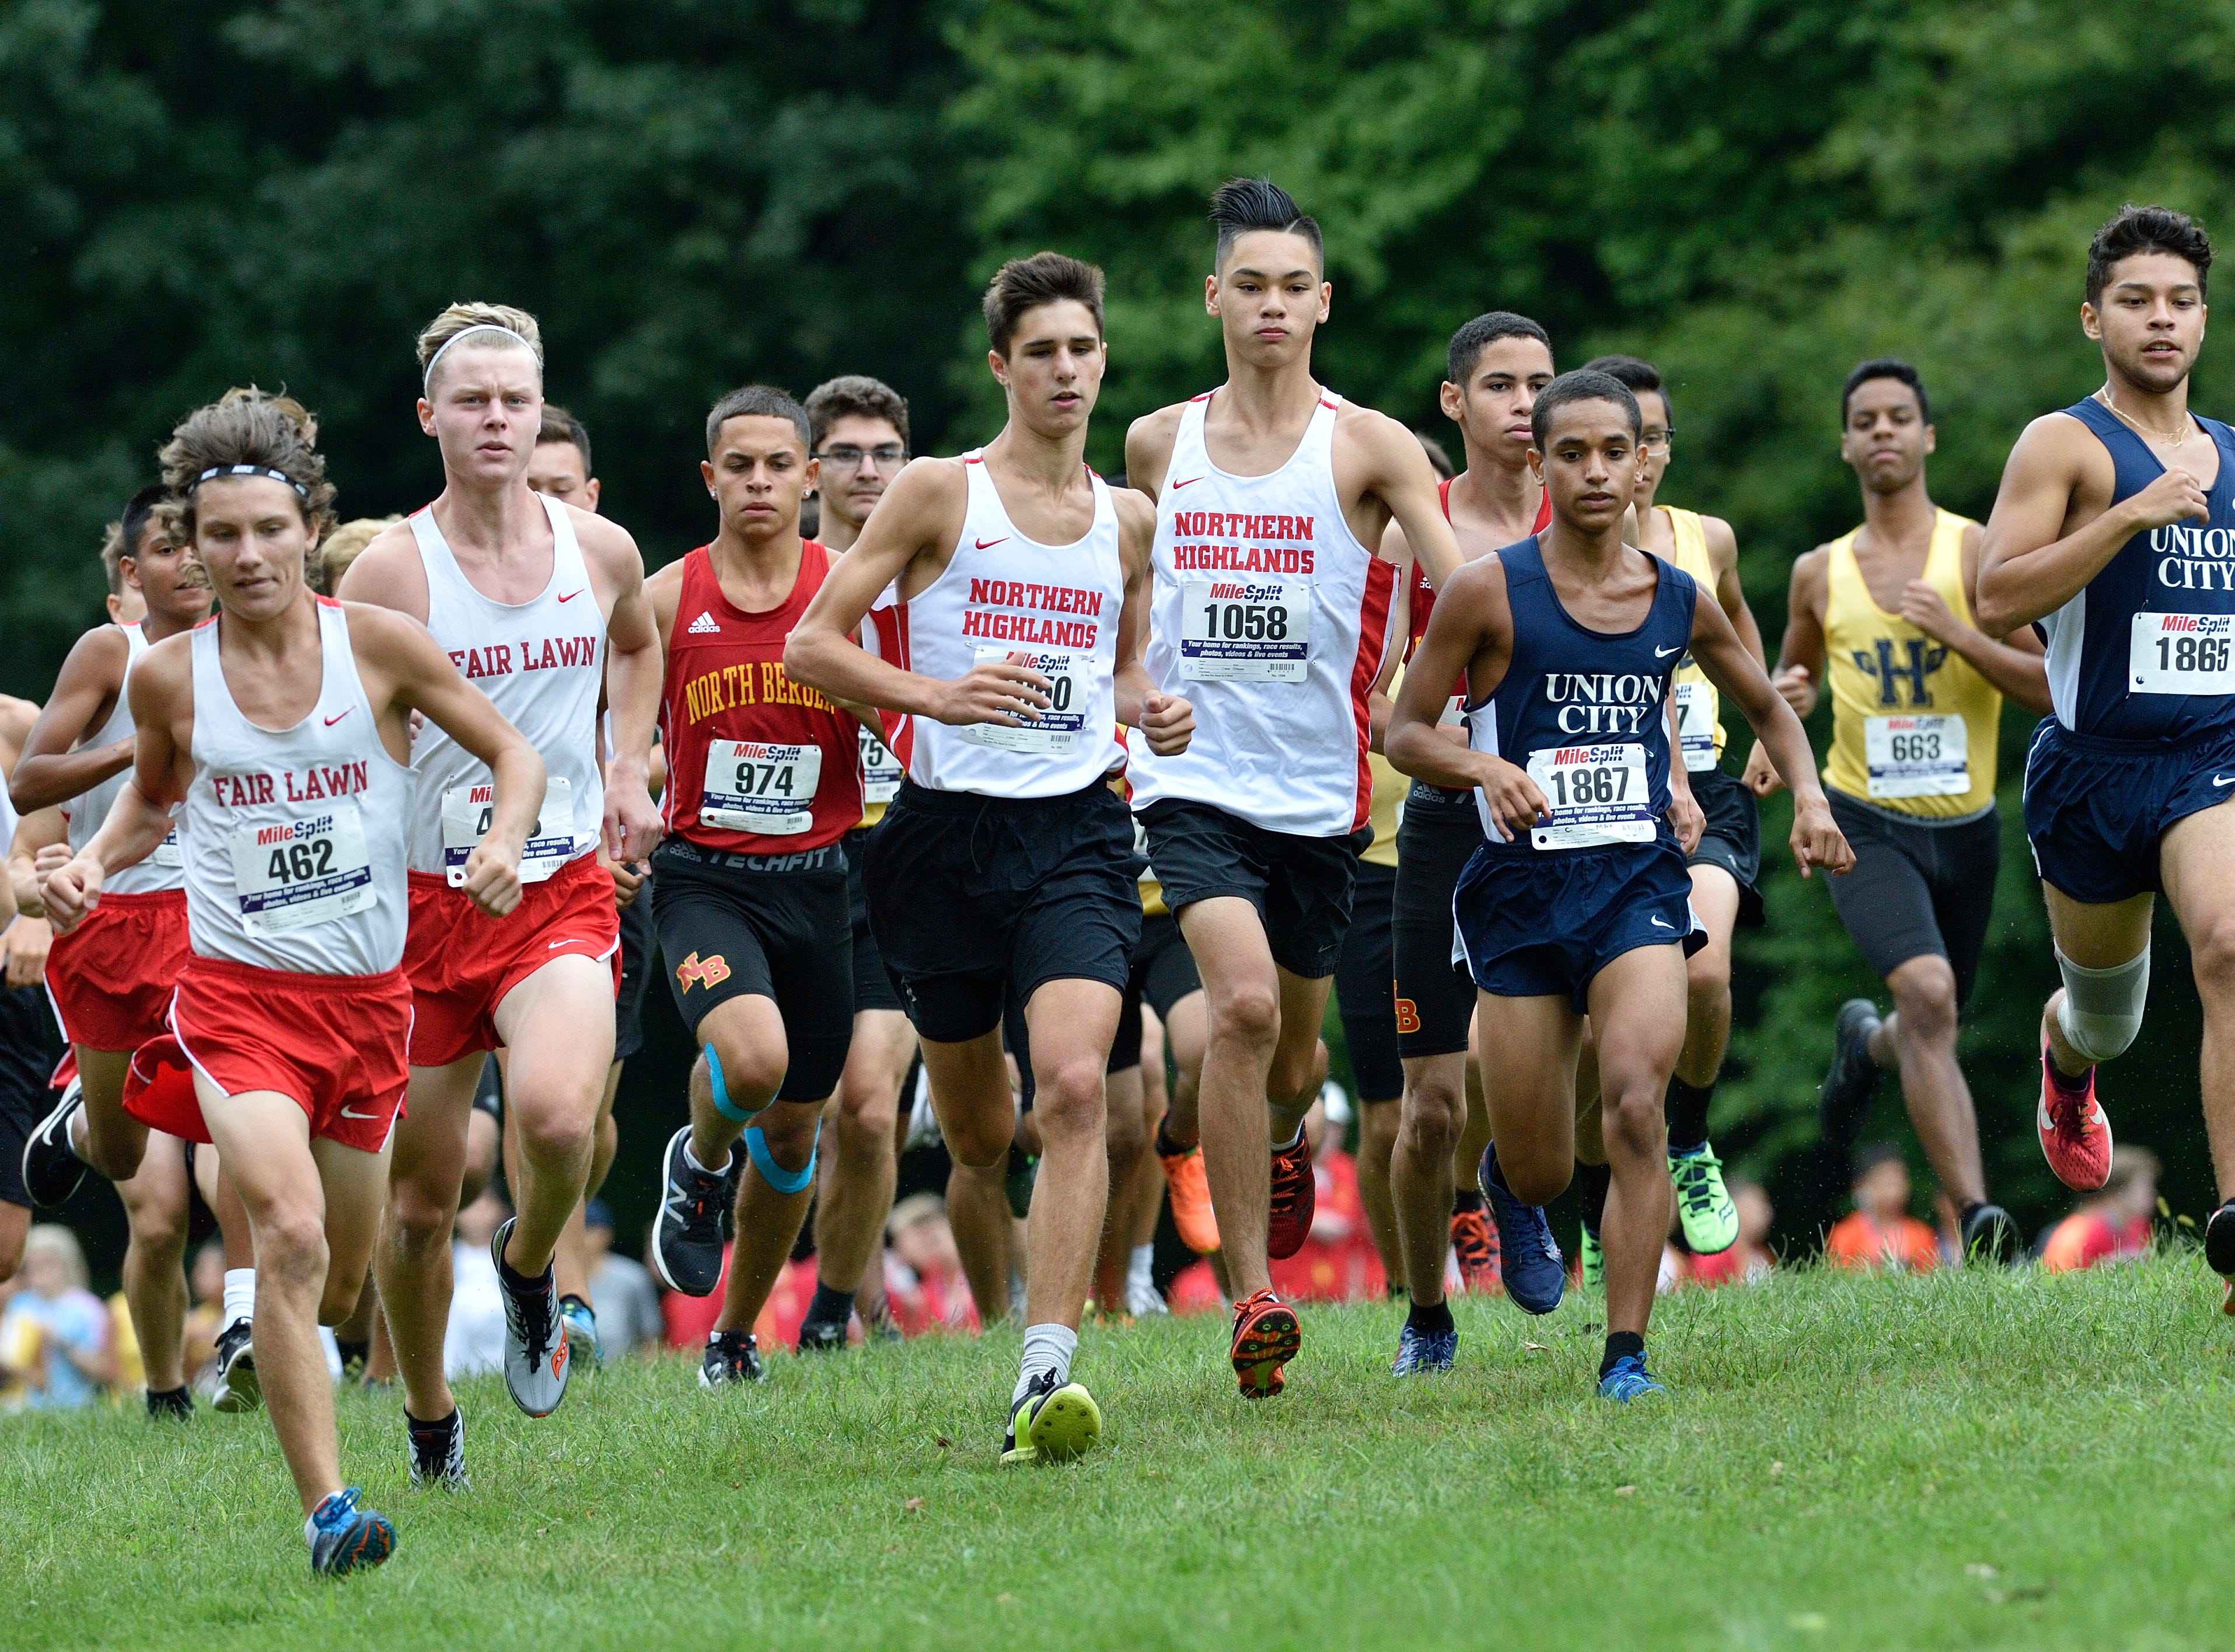 The start of the Boys Varsity A cross country race at Darlington County Park in Mahwah.